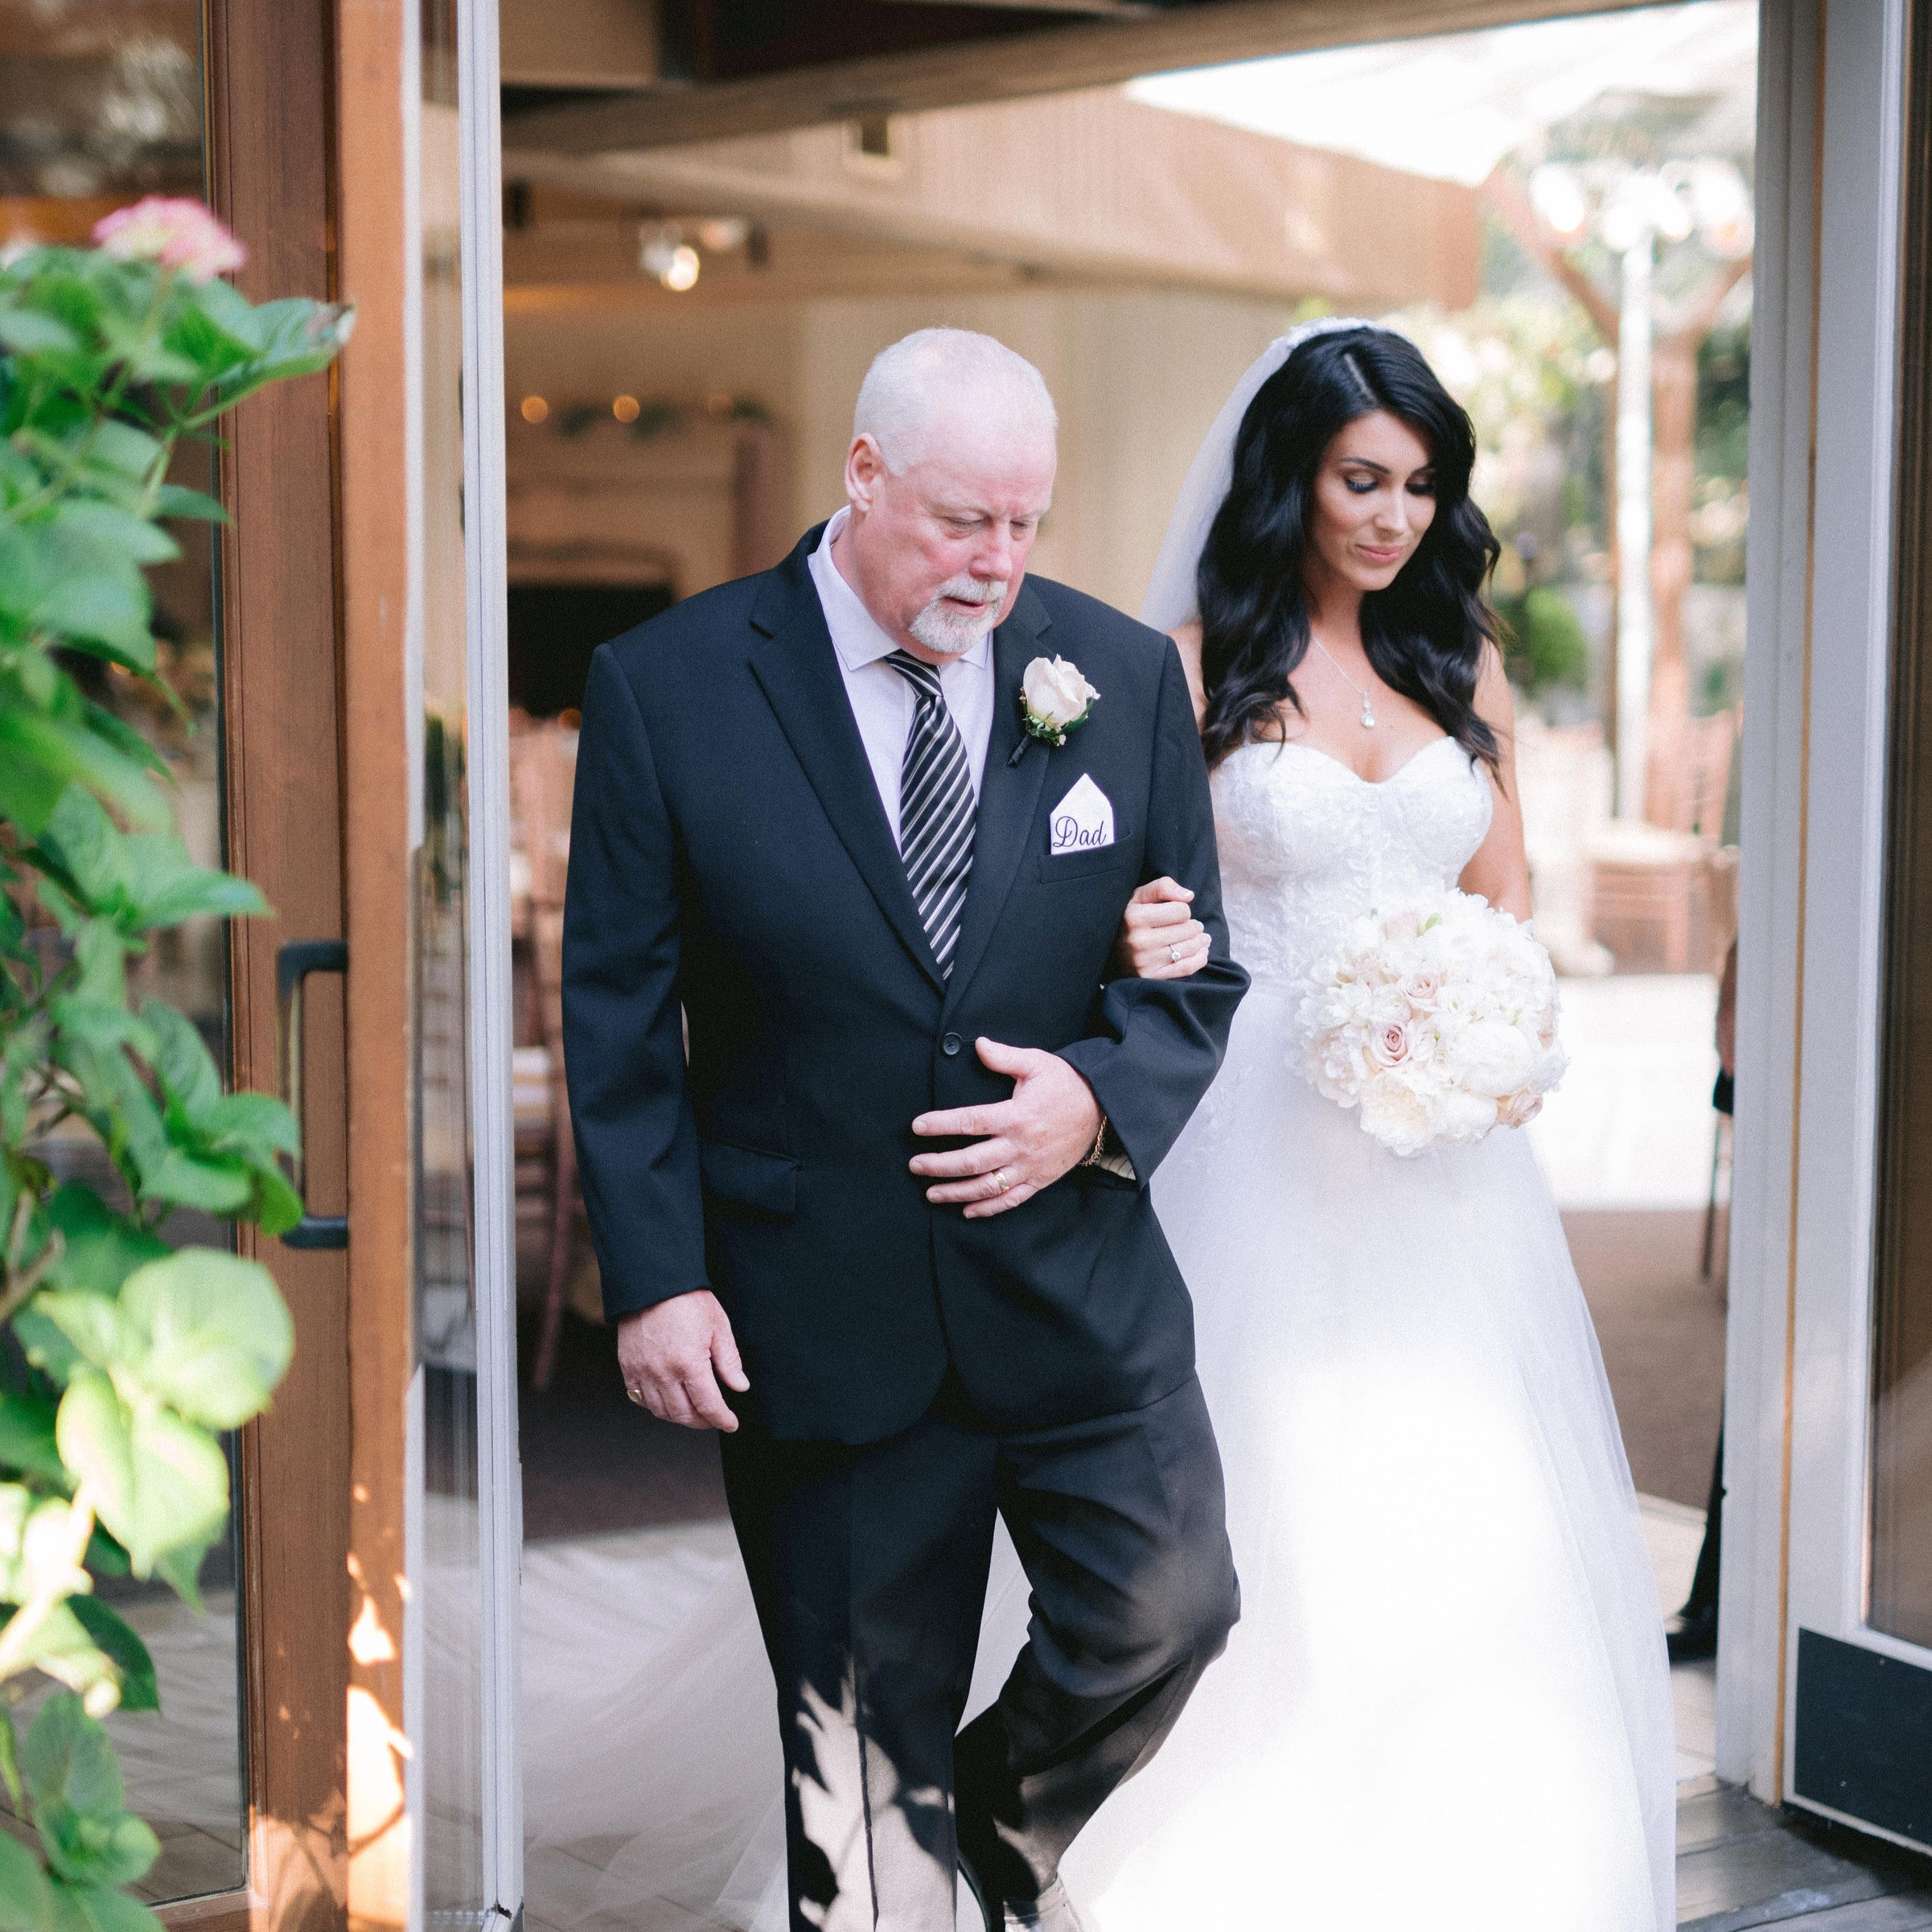 My dad walked me down the aisle.